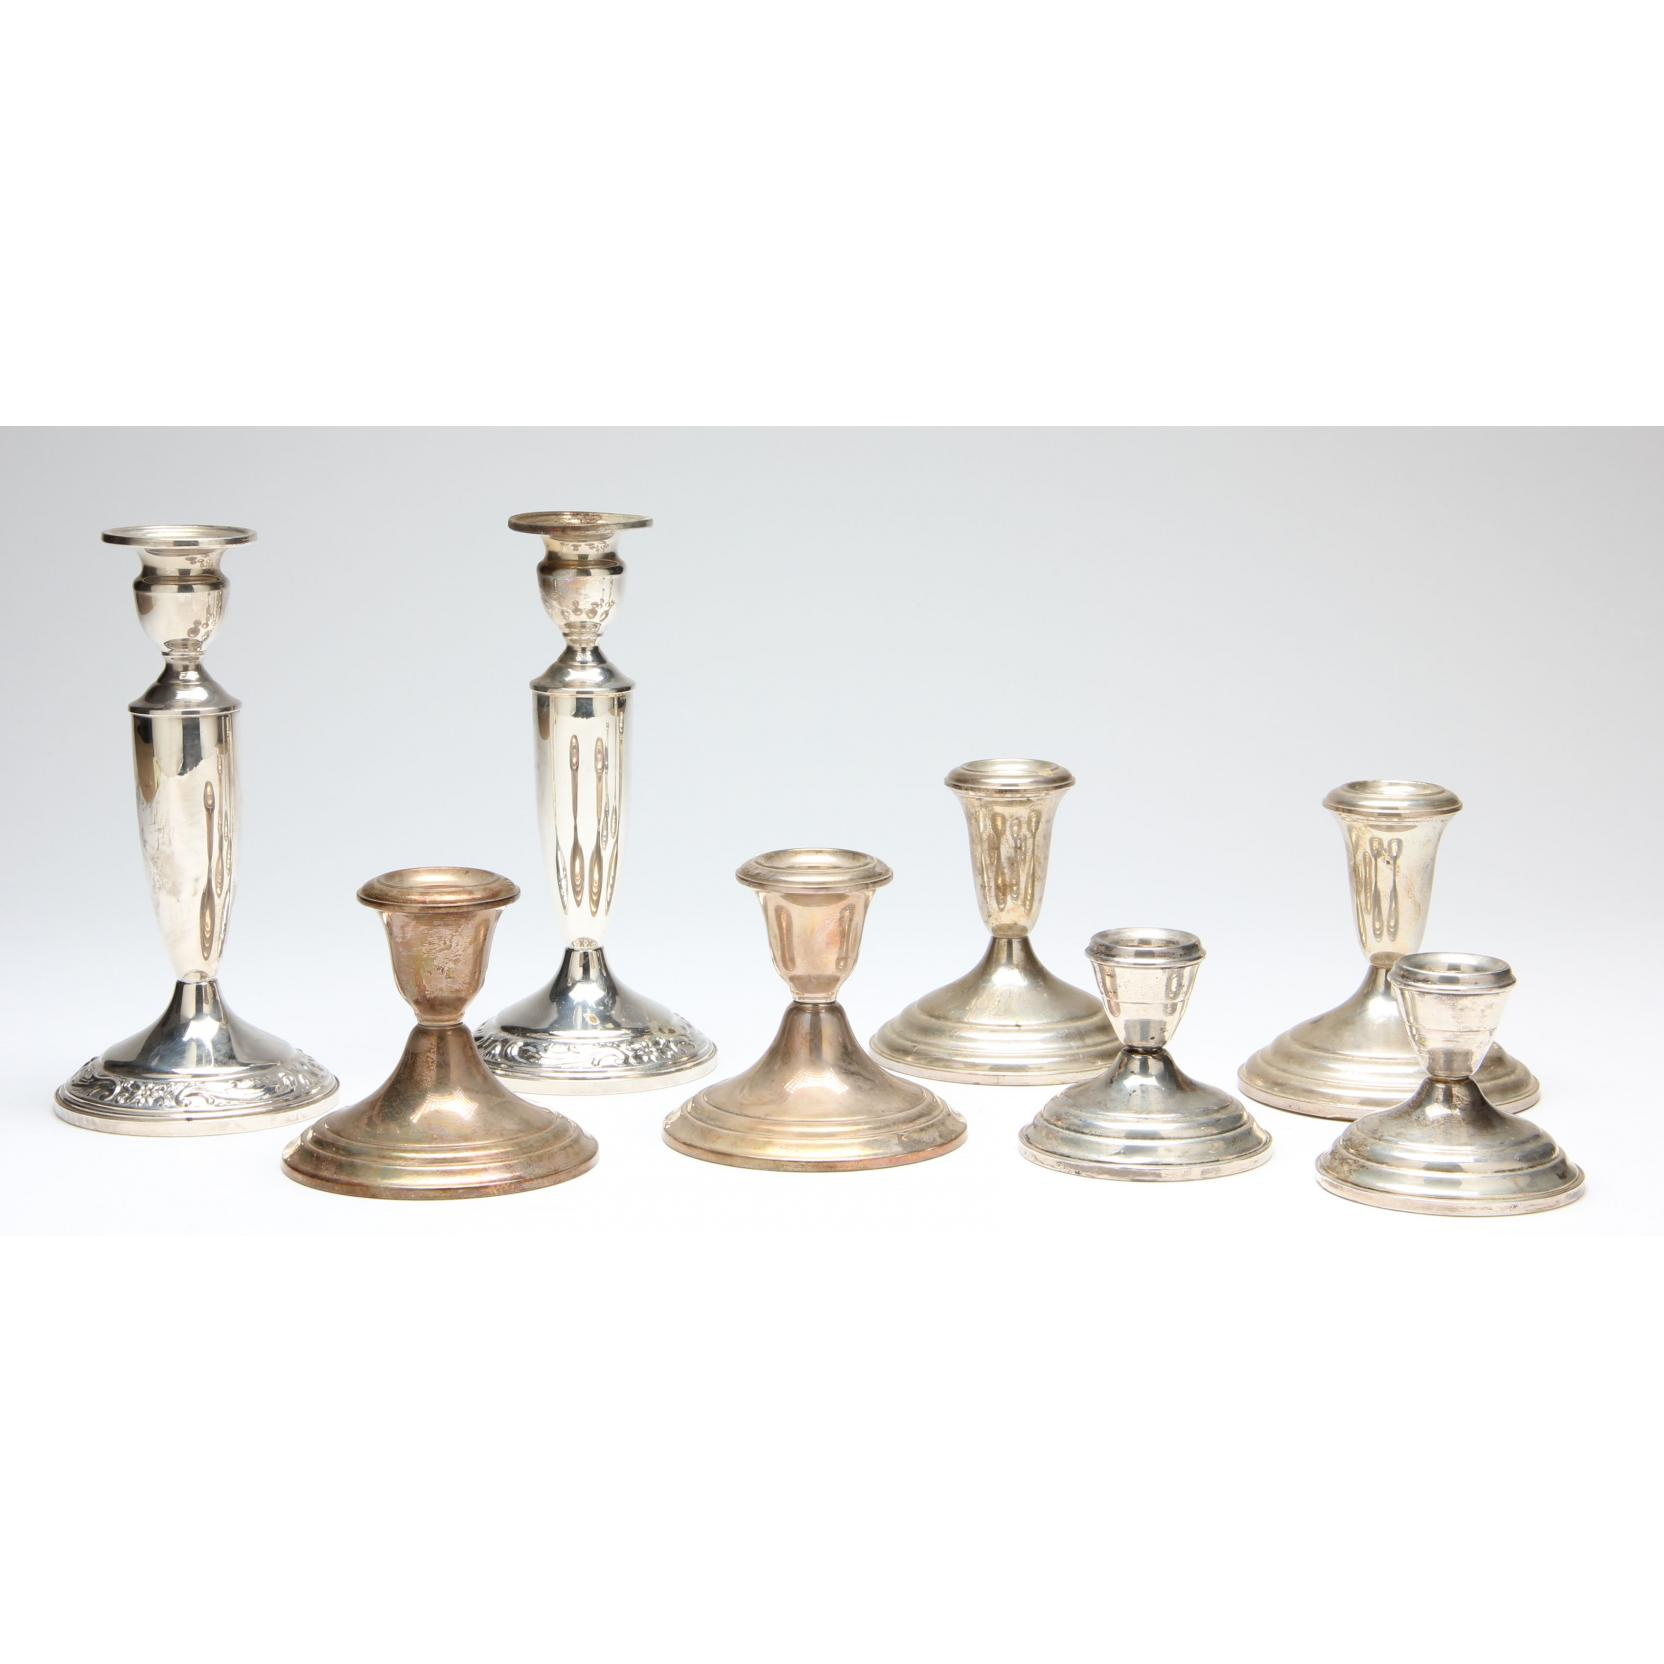 four-pairs-of-sterling-silver-candlesticks